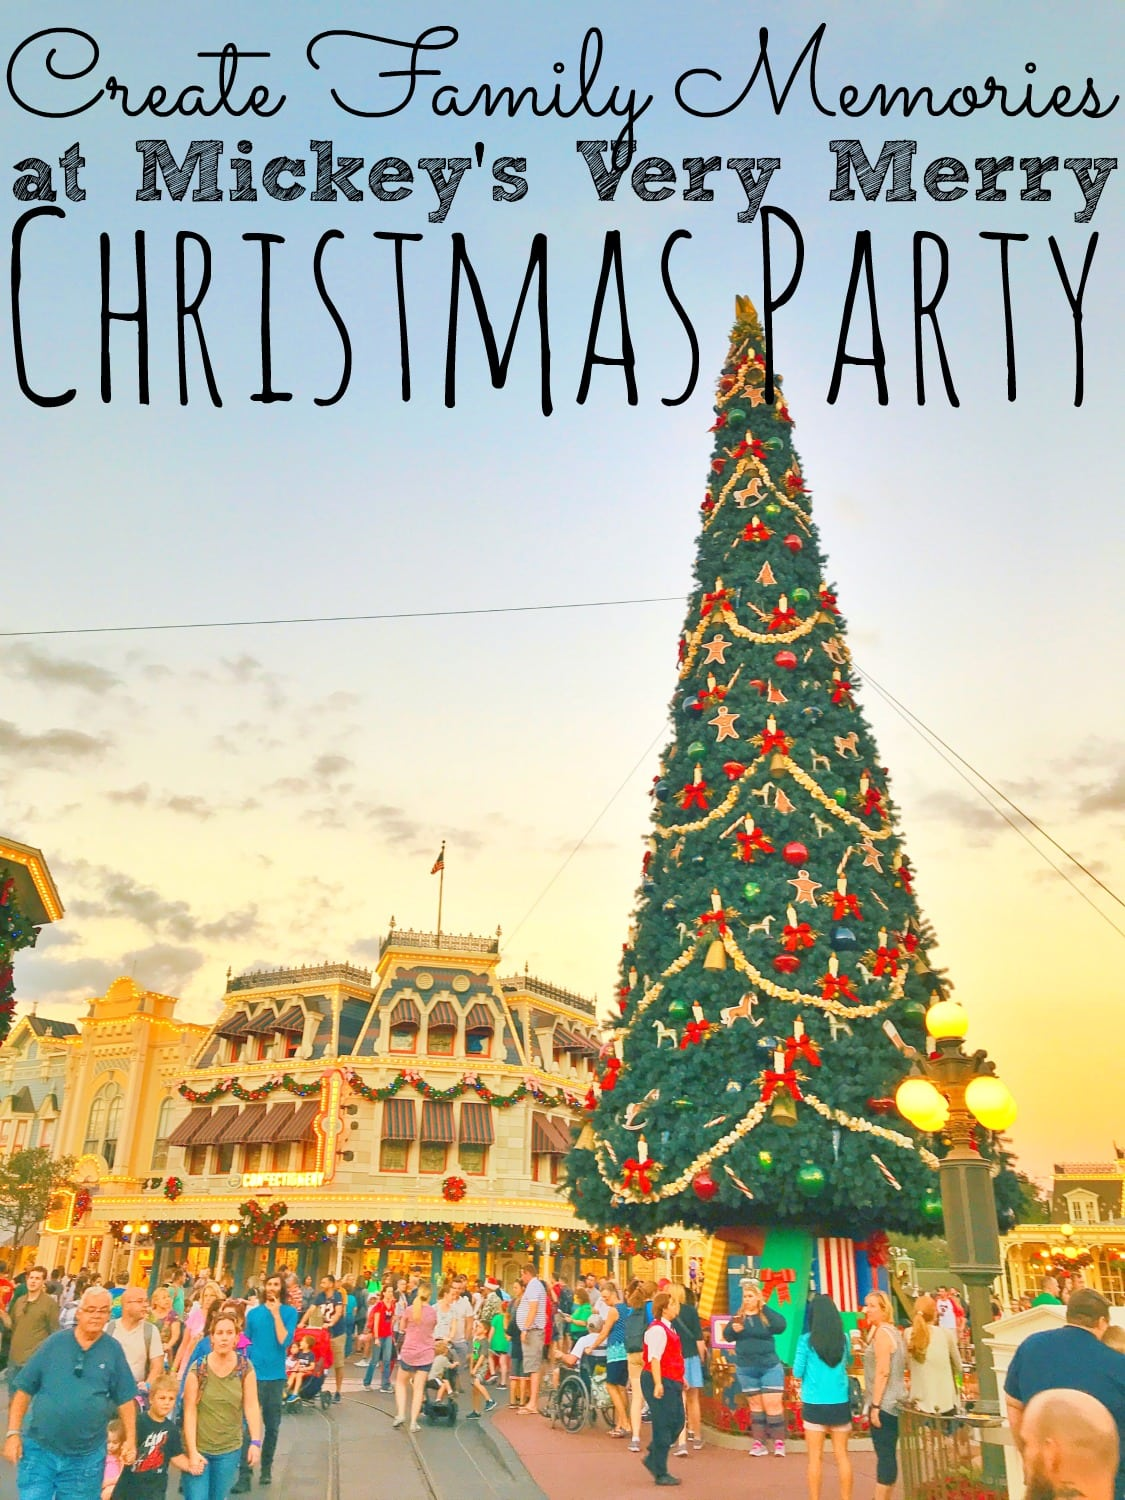 Mickeys Very Merry Christmas Party.Create Family Memories At Mickey S Very Merry Christmas